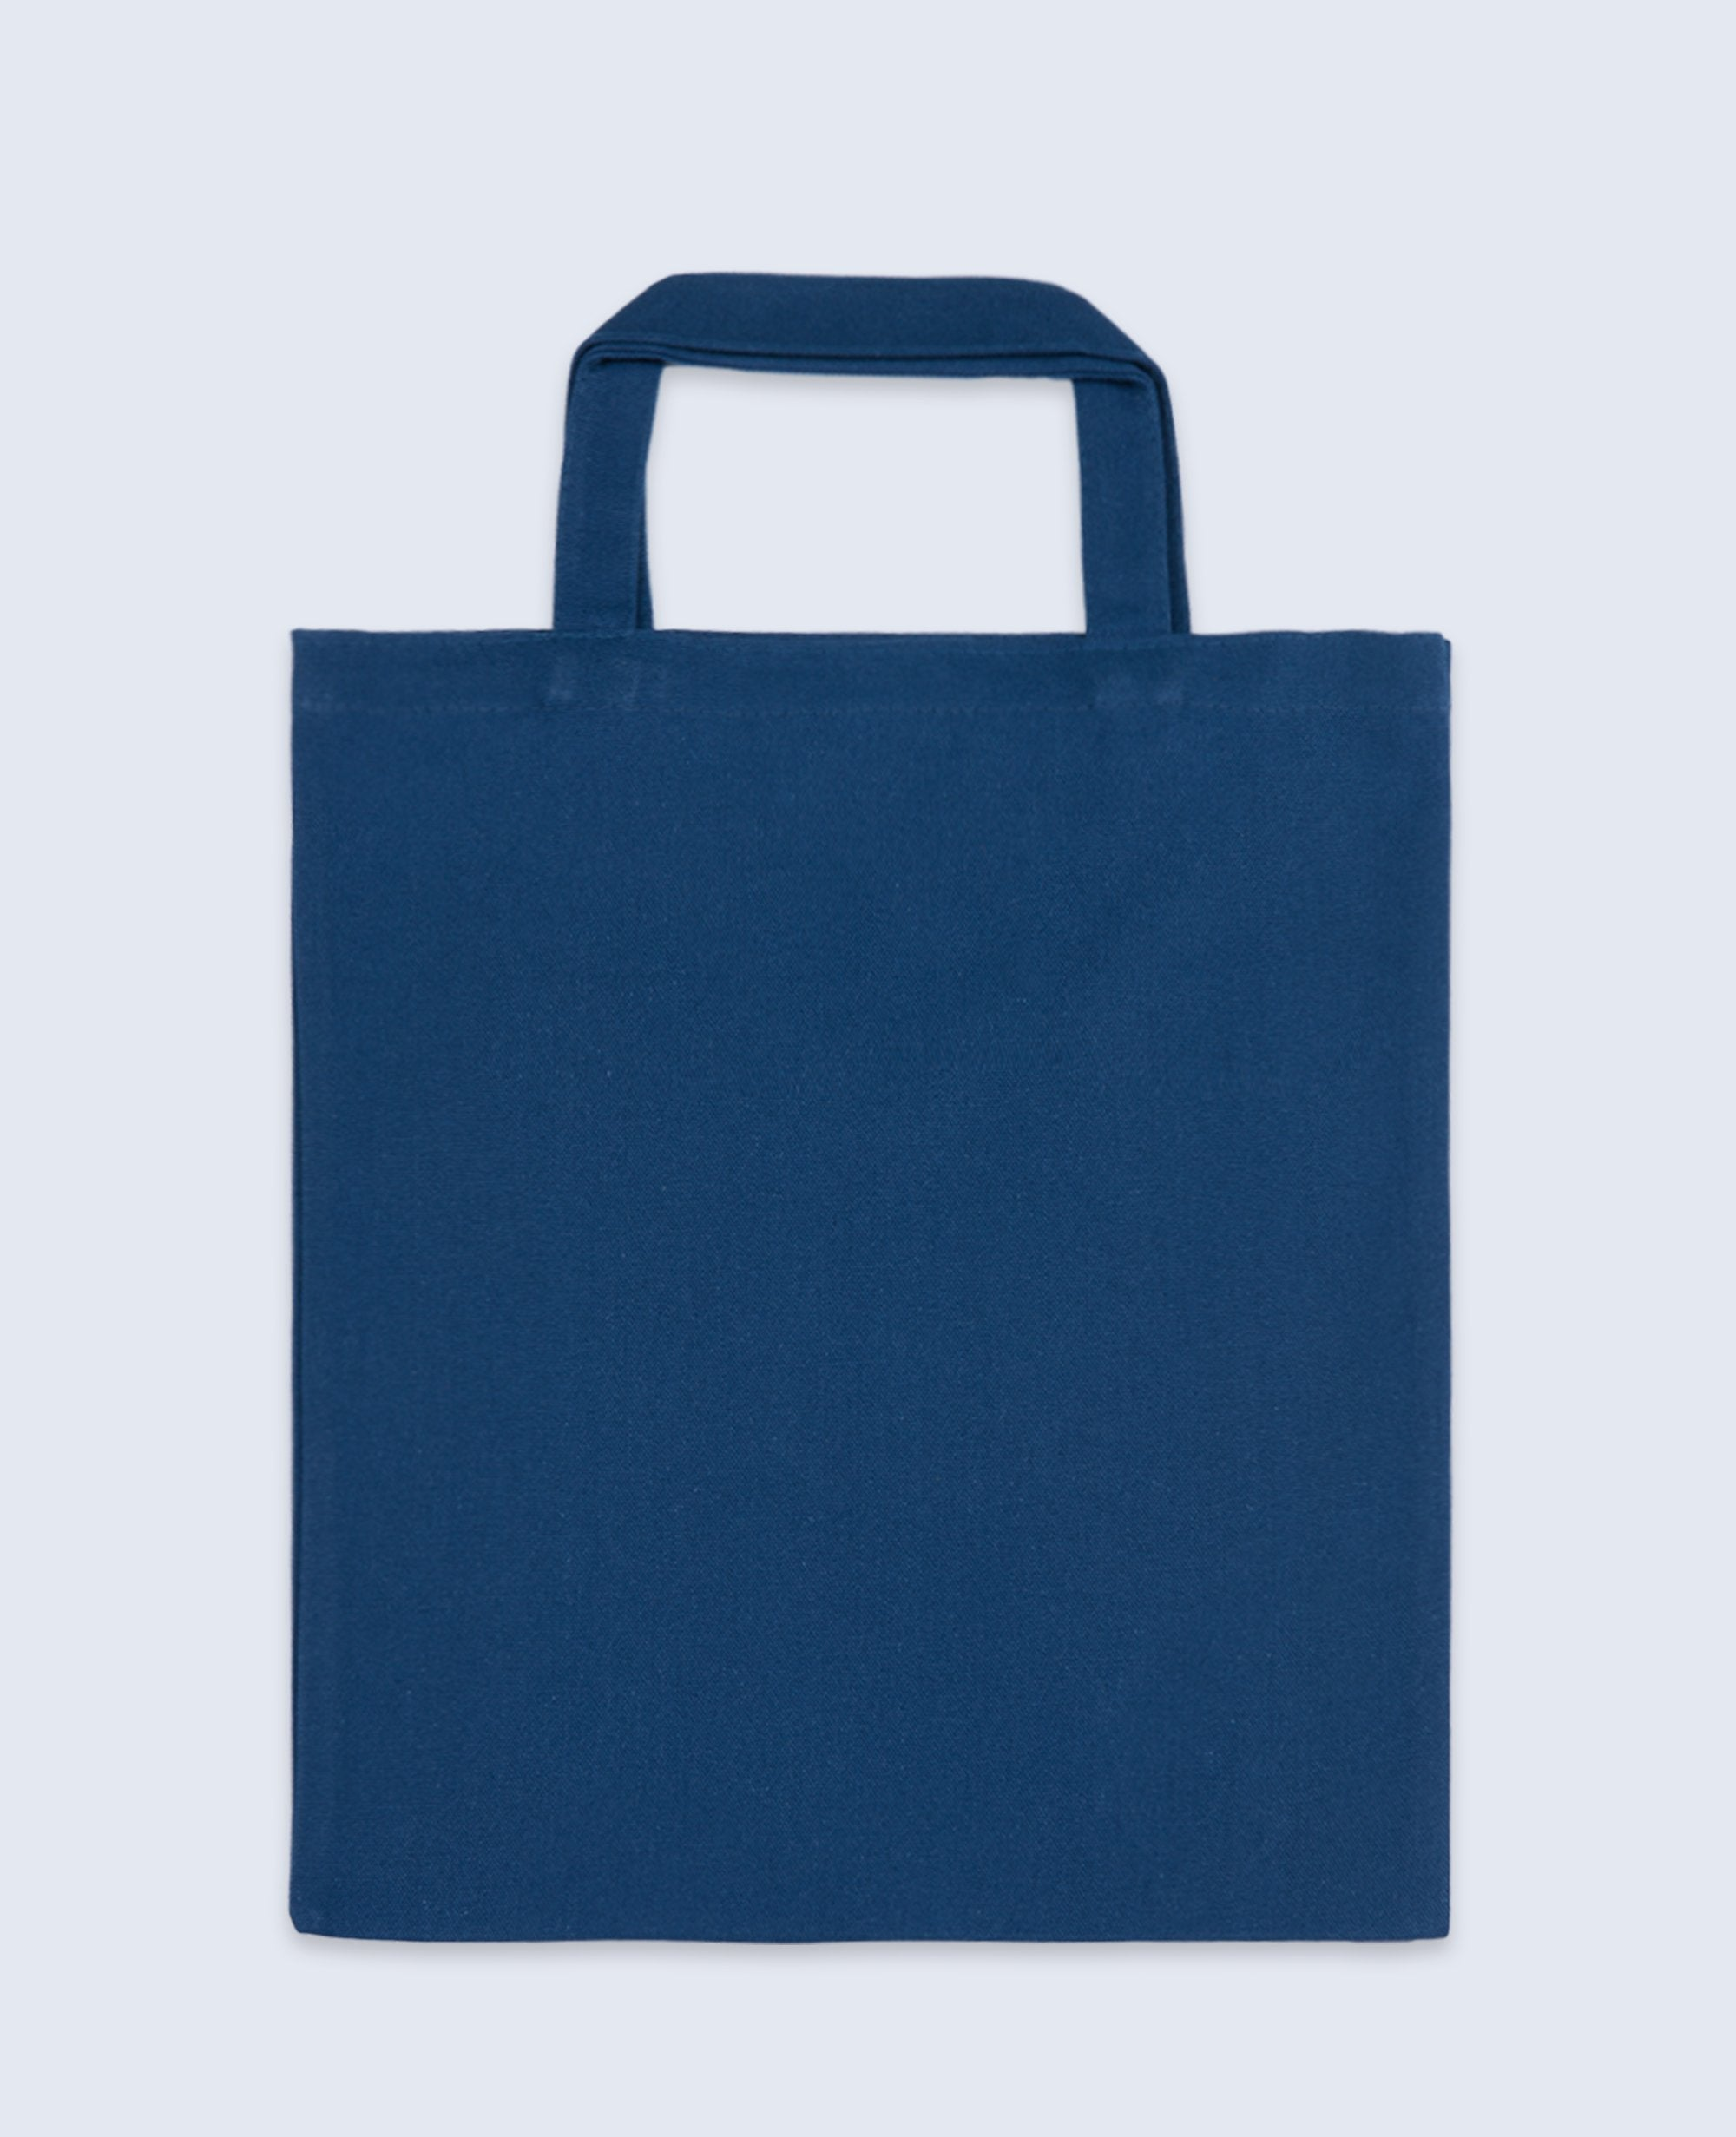 Short Handle Tote bag in Navy - Tote bags - BRANMA - BRANMA